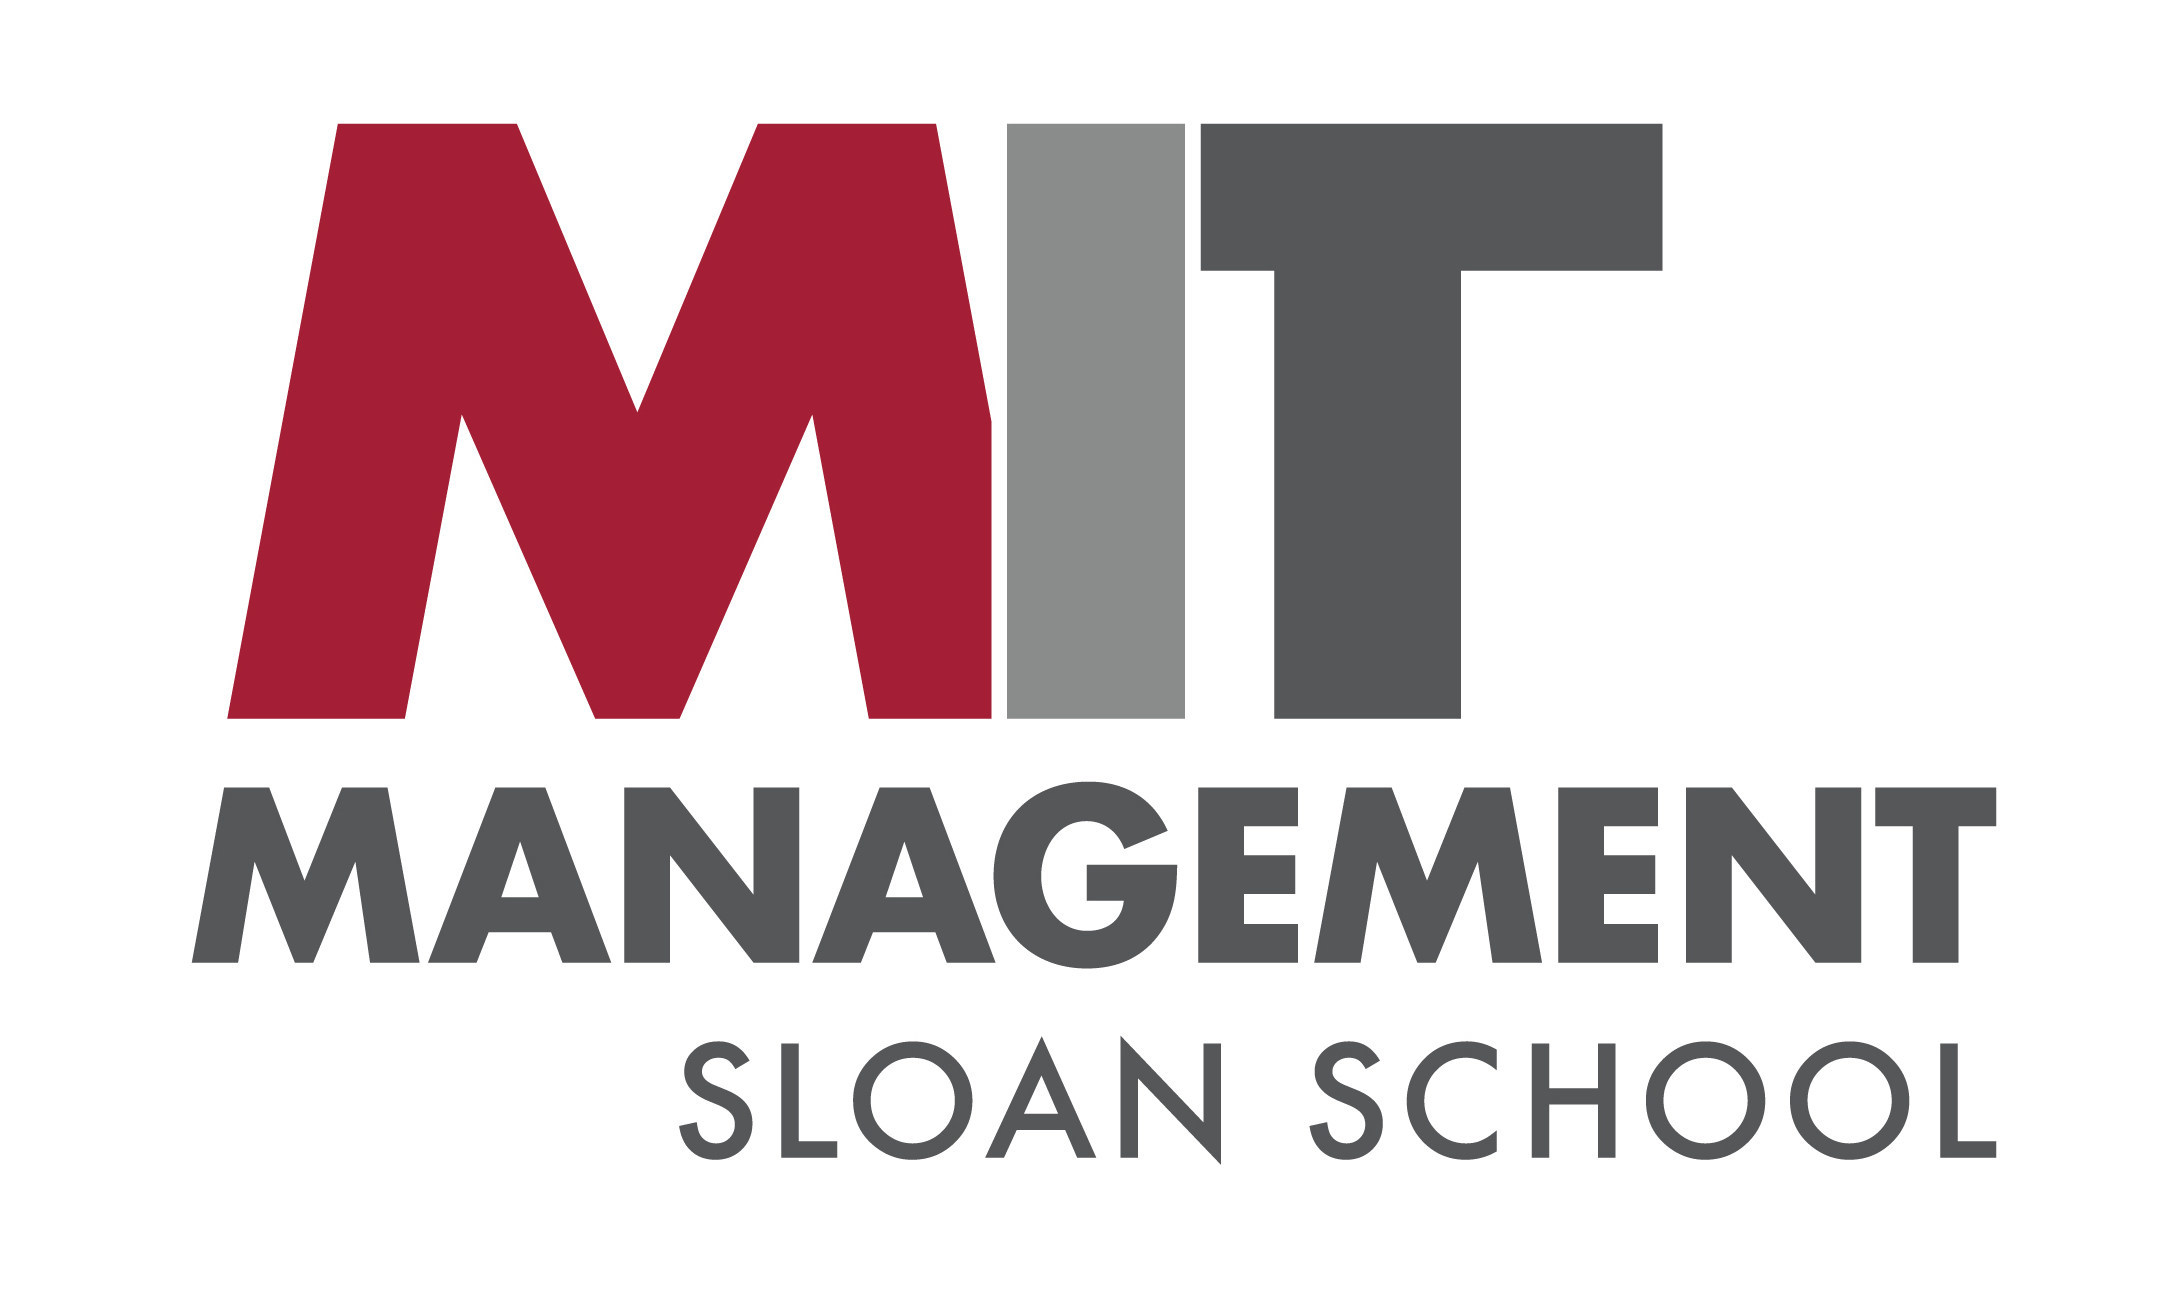 NEW MIT SLOAN STUDY APPLIES GAMIFICATION TECHNIQUES TO IMPROVE ONLINE TEACHING TECHNIQUES AND LEARNING OUTCOMES FOR STUDENTS